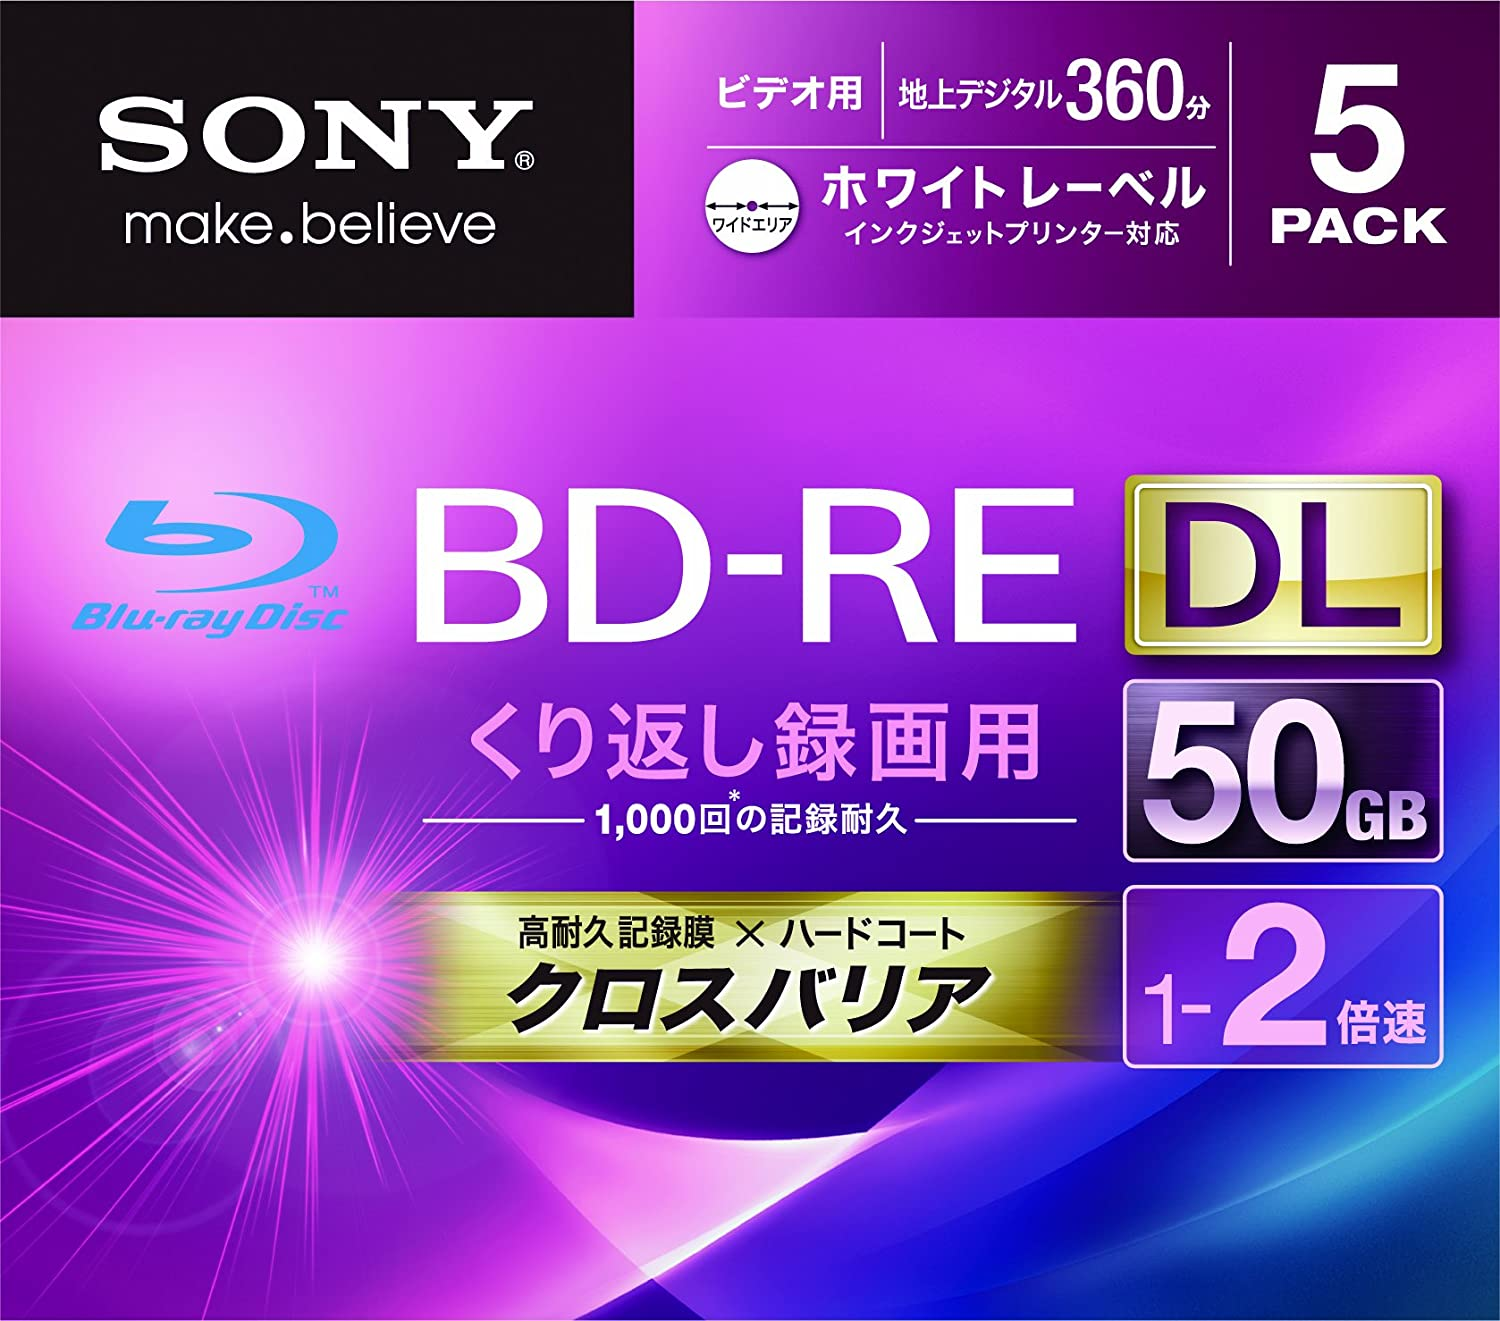 Sony Blu-ray Rewritable Disc | BD-RE 50GB DL 2x Ink-jet Printable 5 Pack | 5BNE2VGPS2 (japan import)